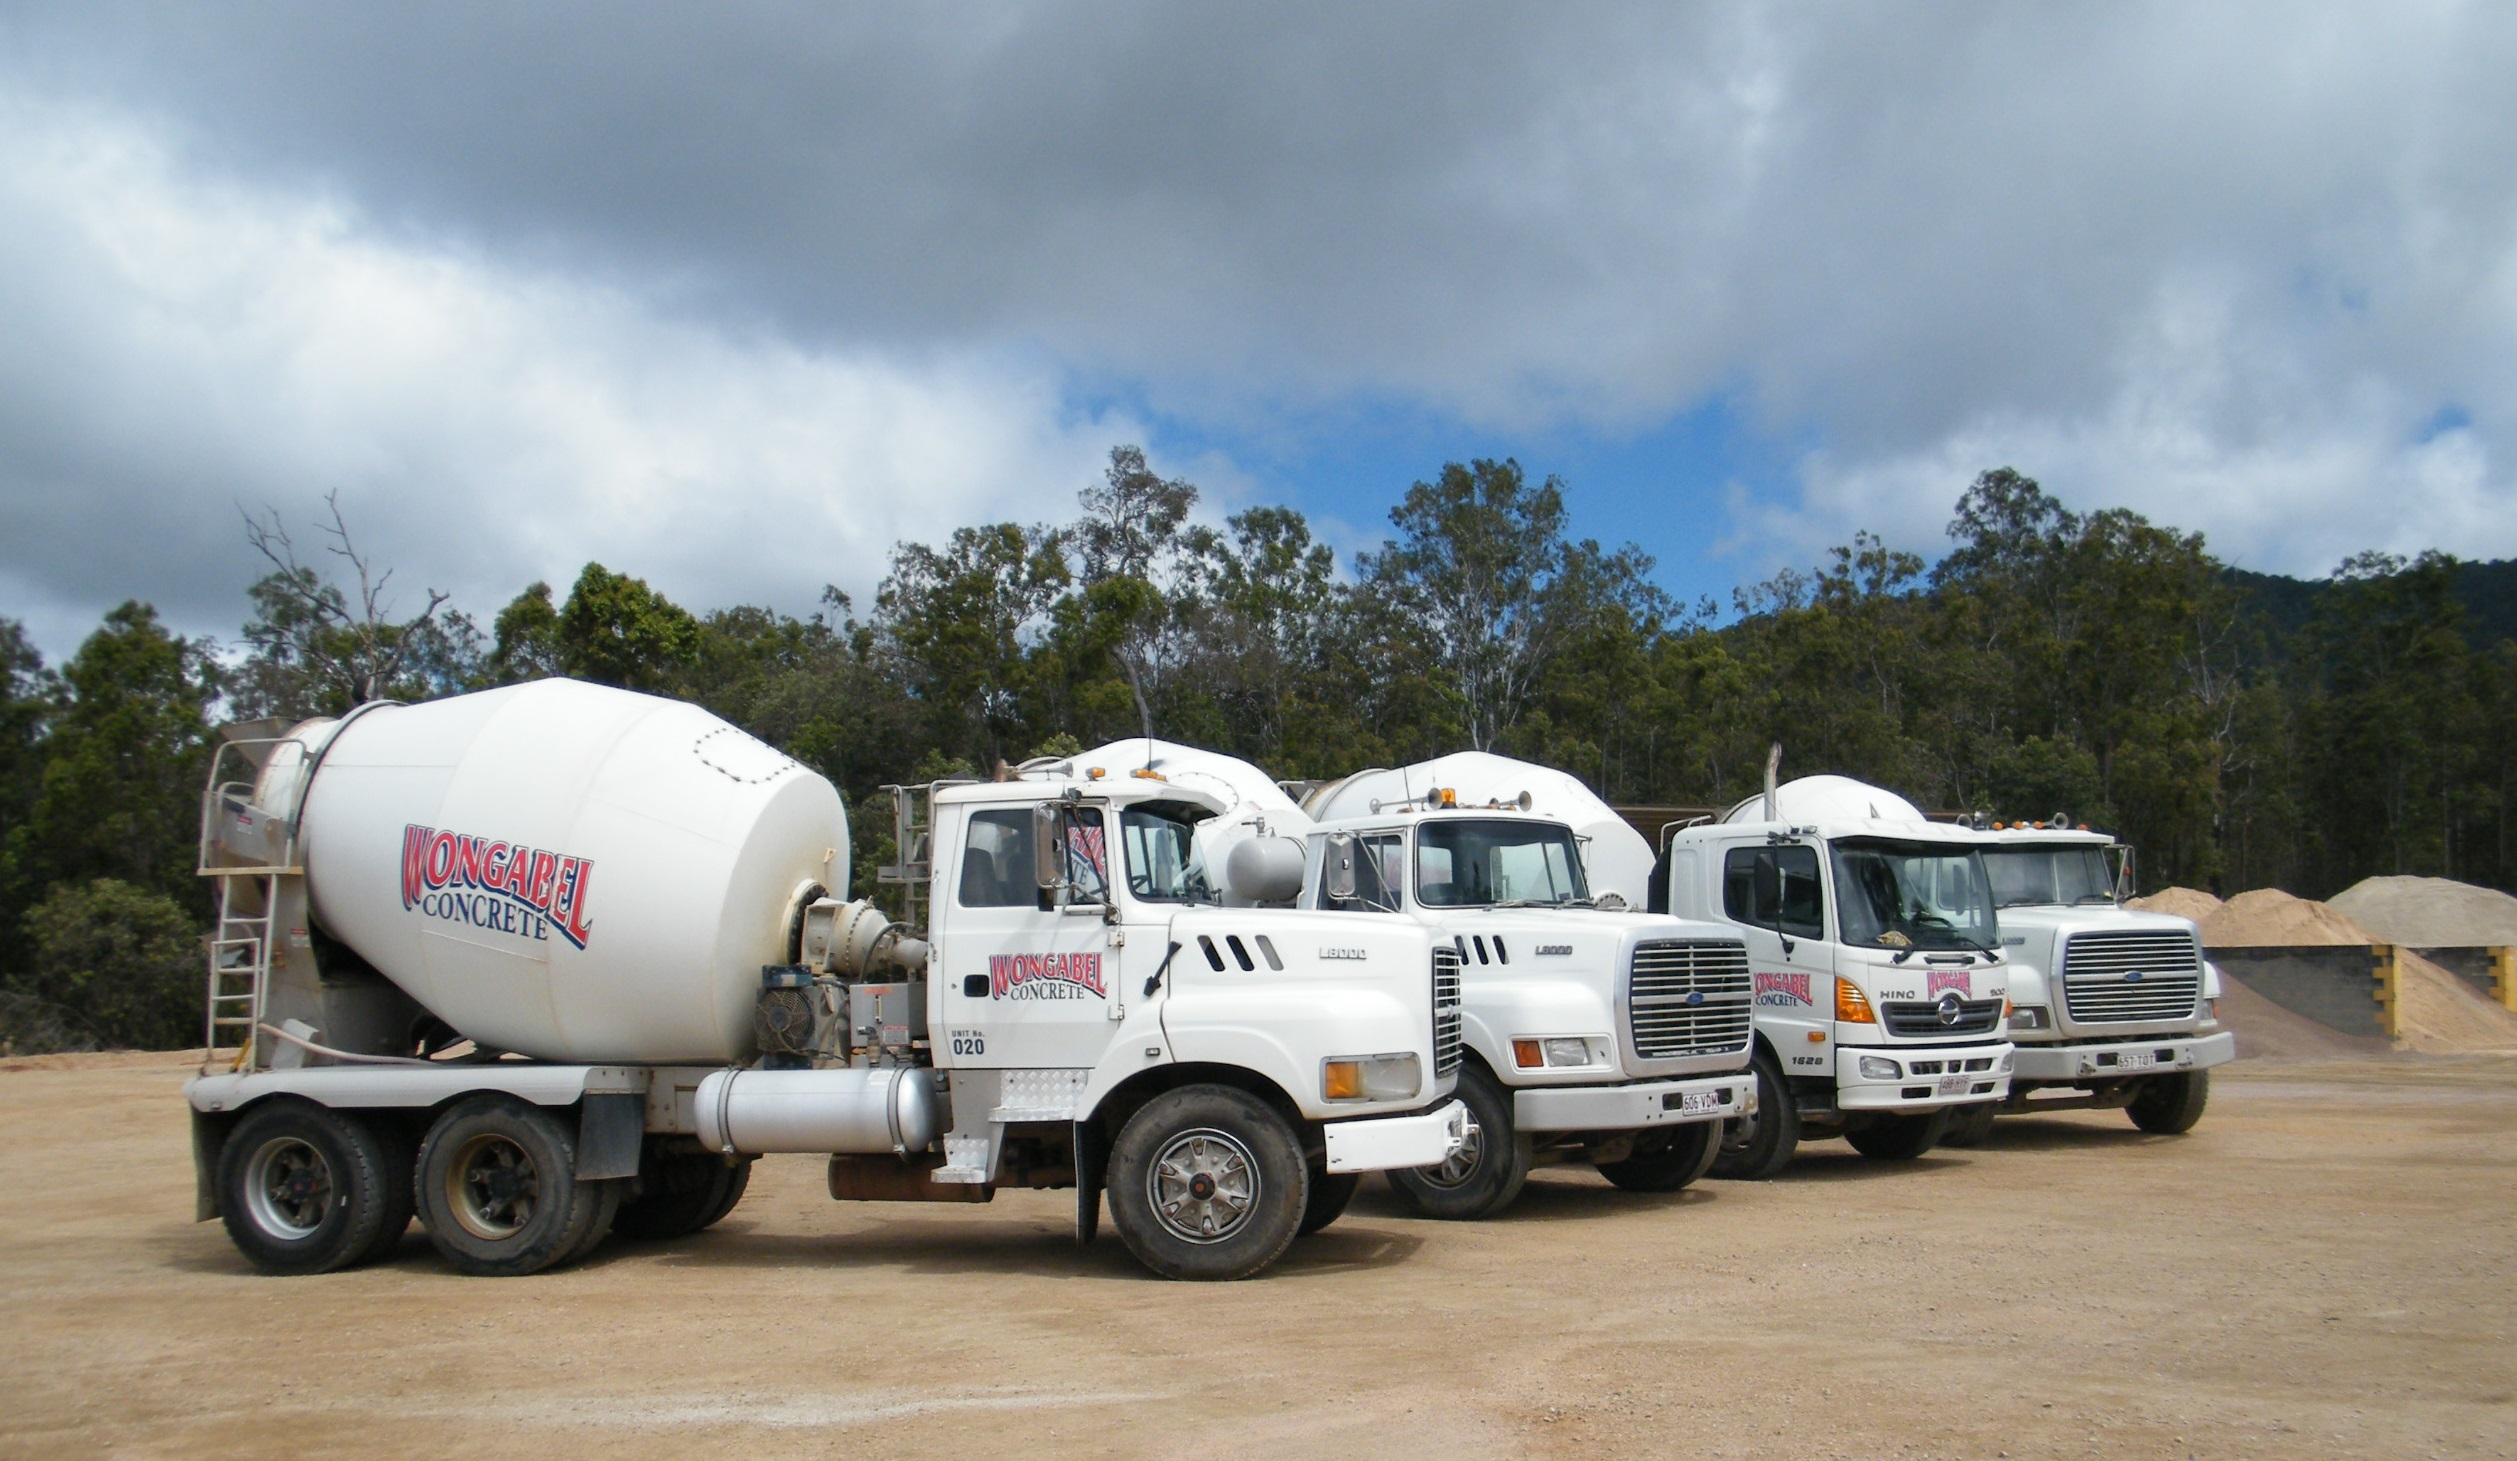 Wongabel Concrete - nine trucks available